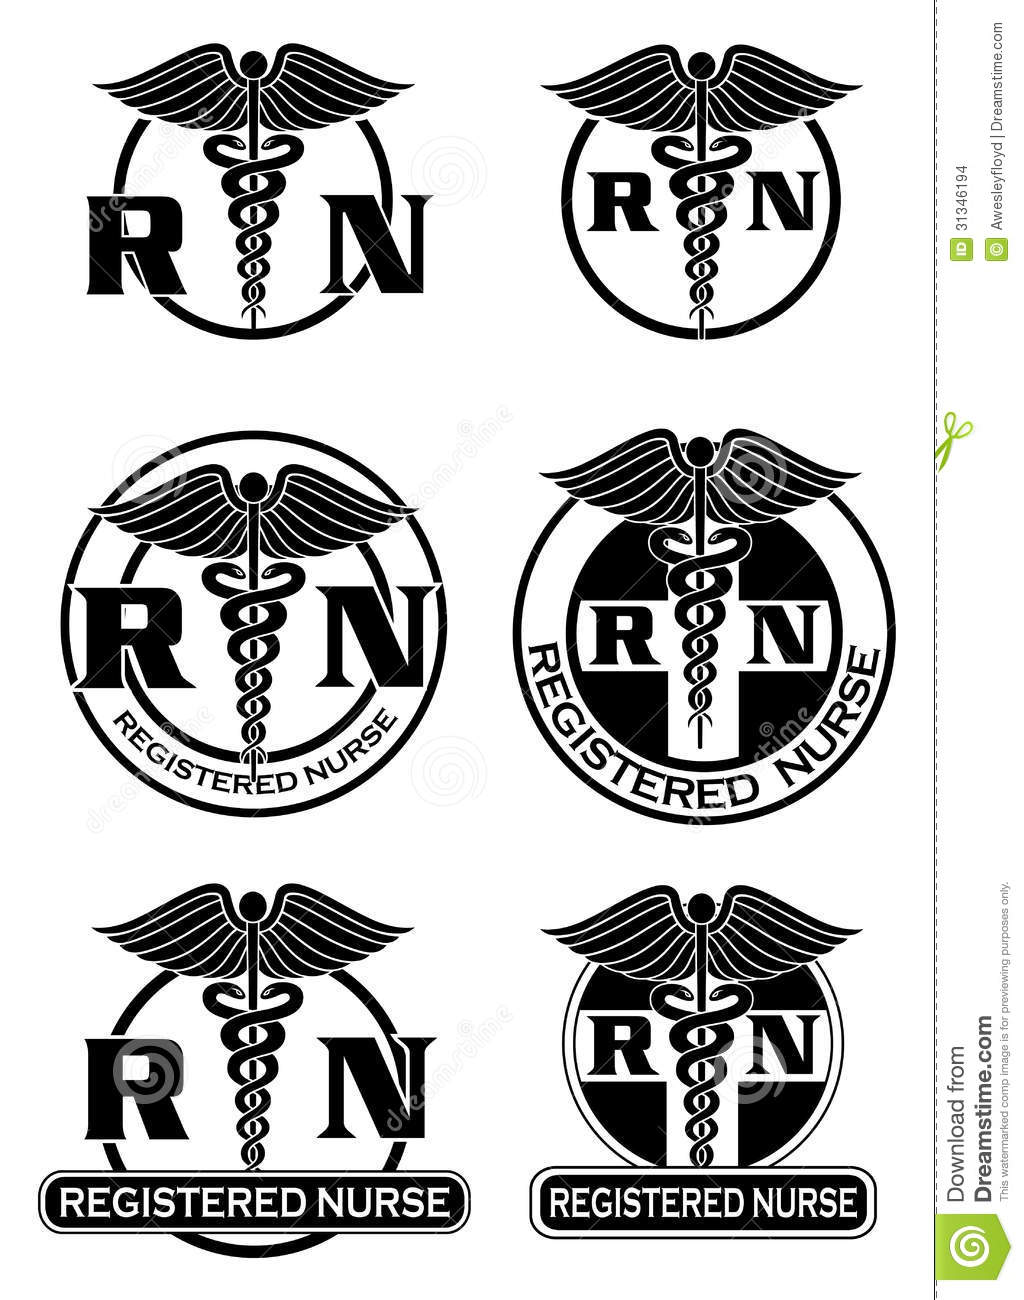 Registered Nurse Designs Graphic Style Stock Images